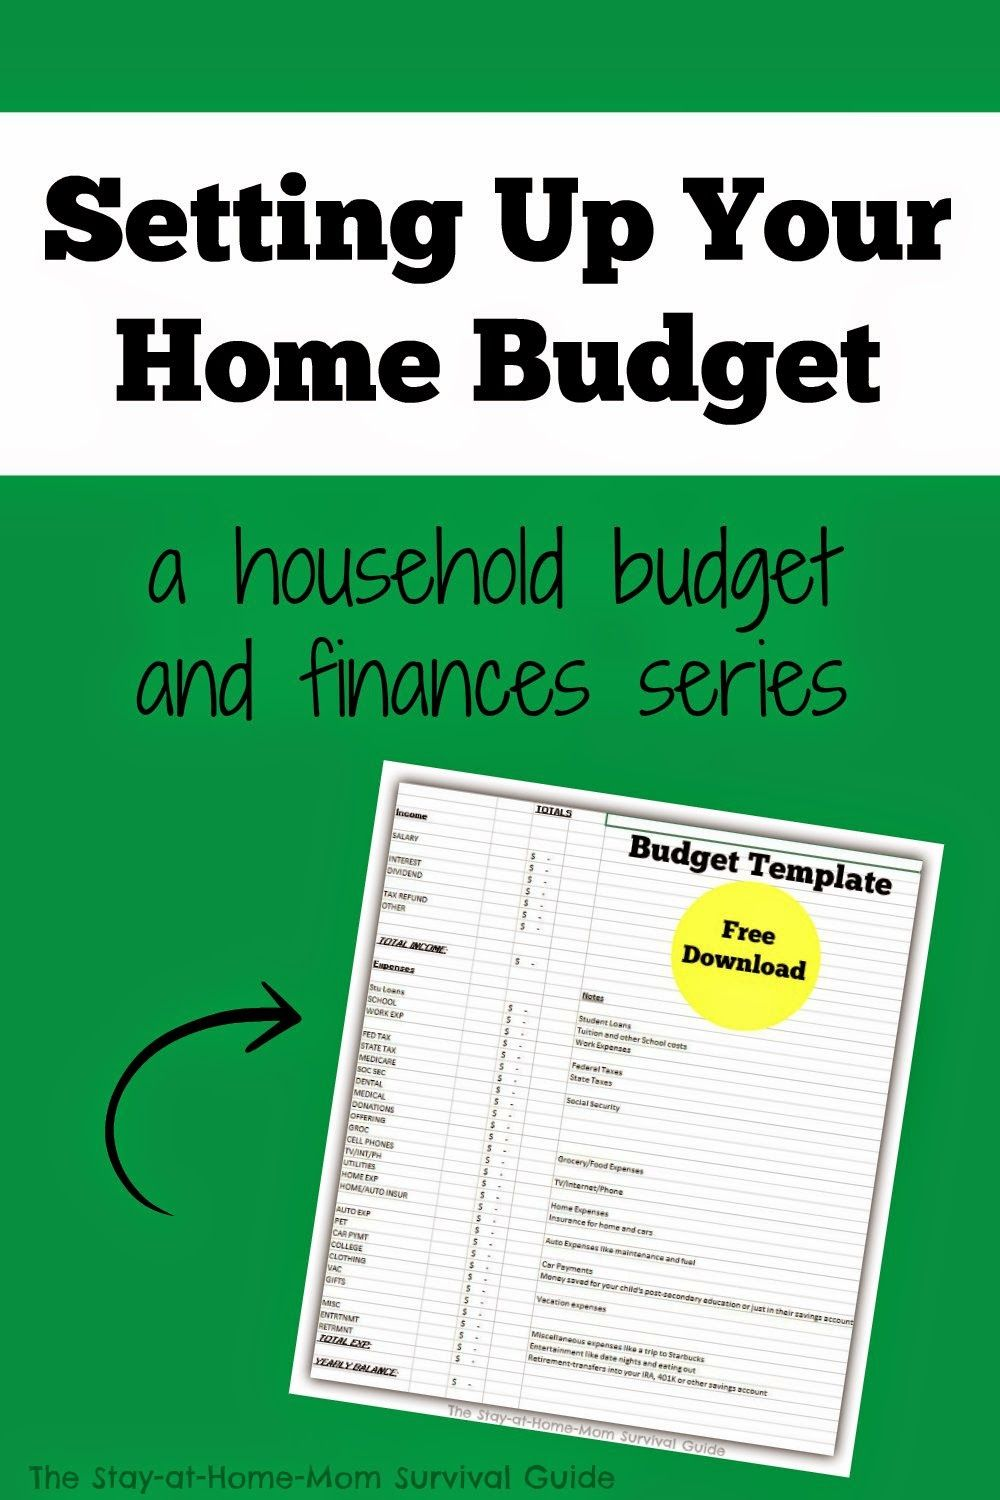 Setting Up Your Home Budget Free Download  Budget Template